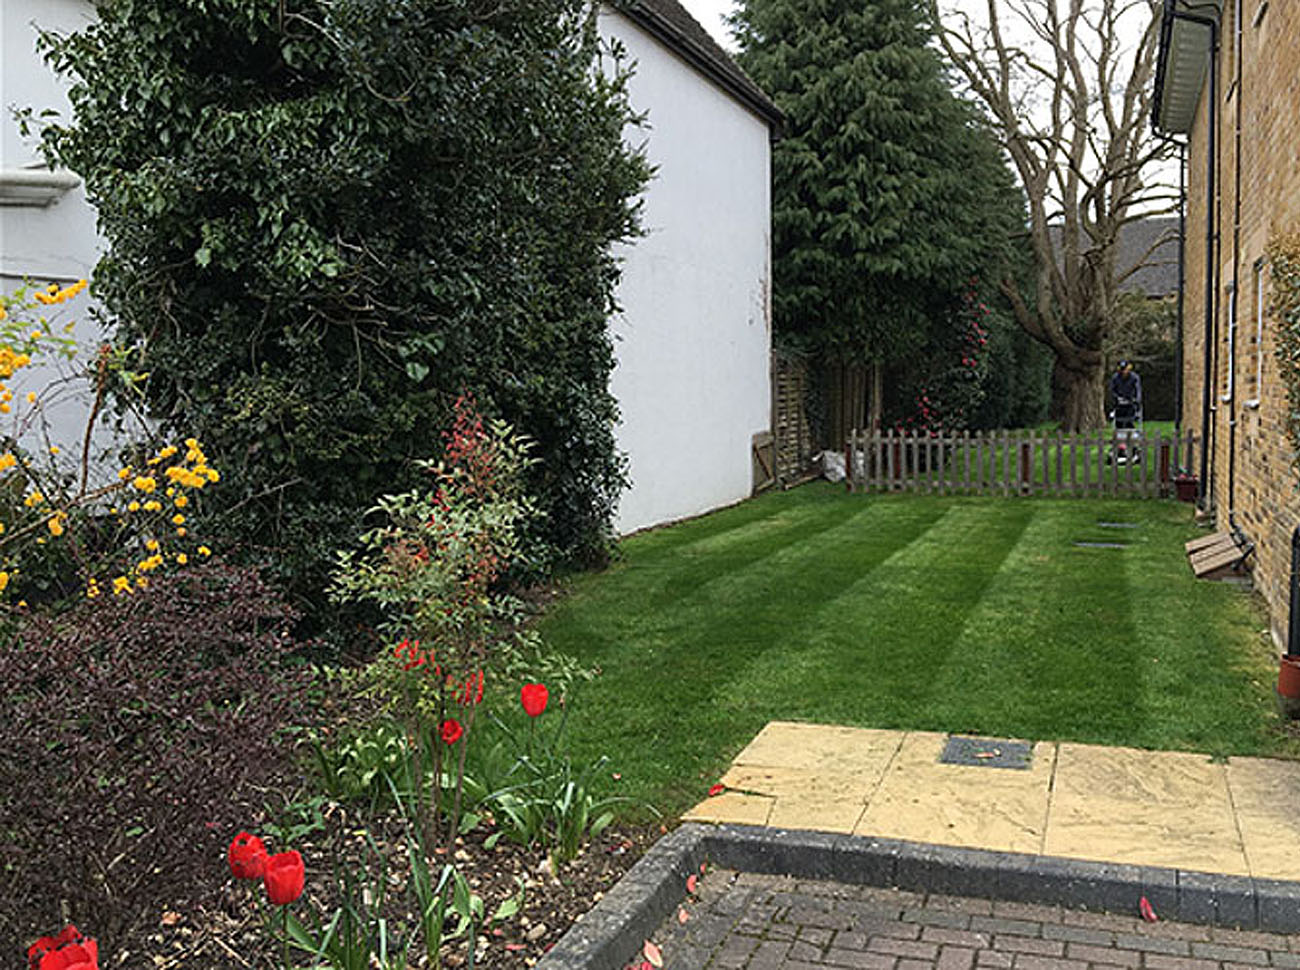 Allwinds provide professional grounds maintenance to multi acre sites such as apartment complexes and business premises.